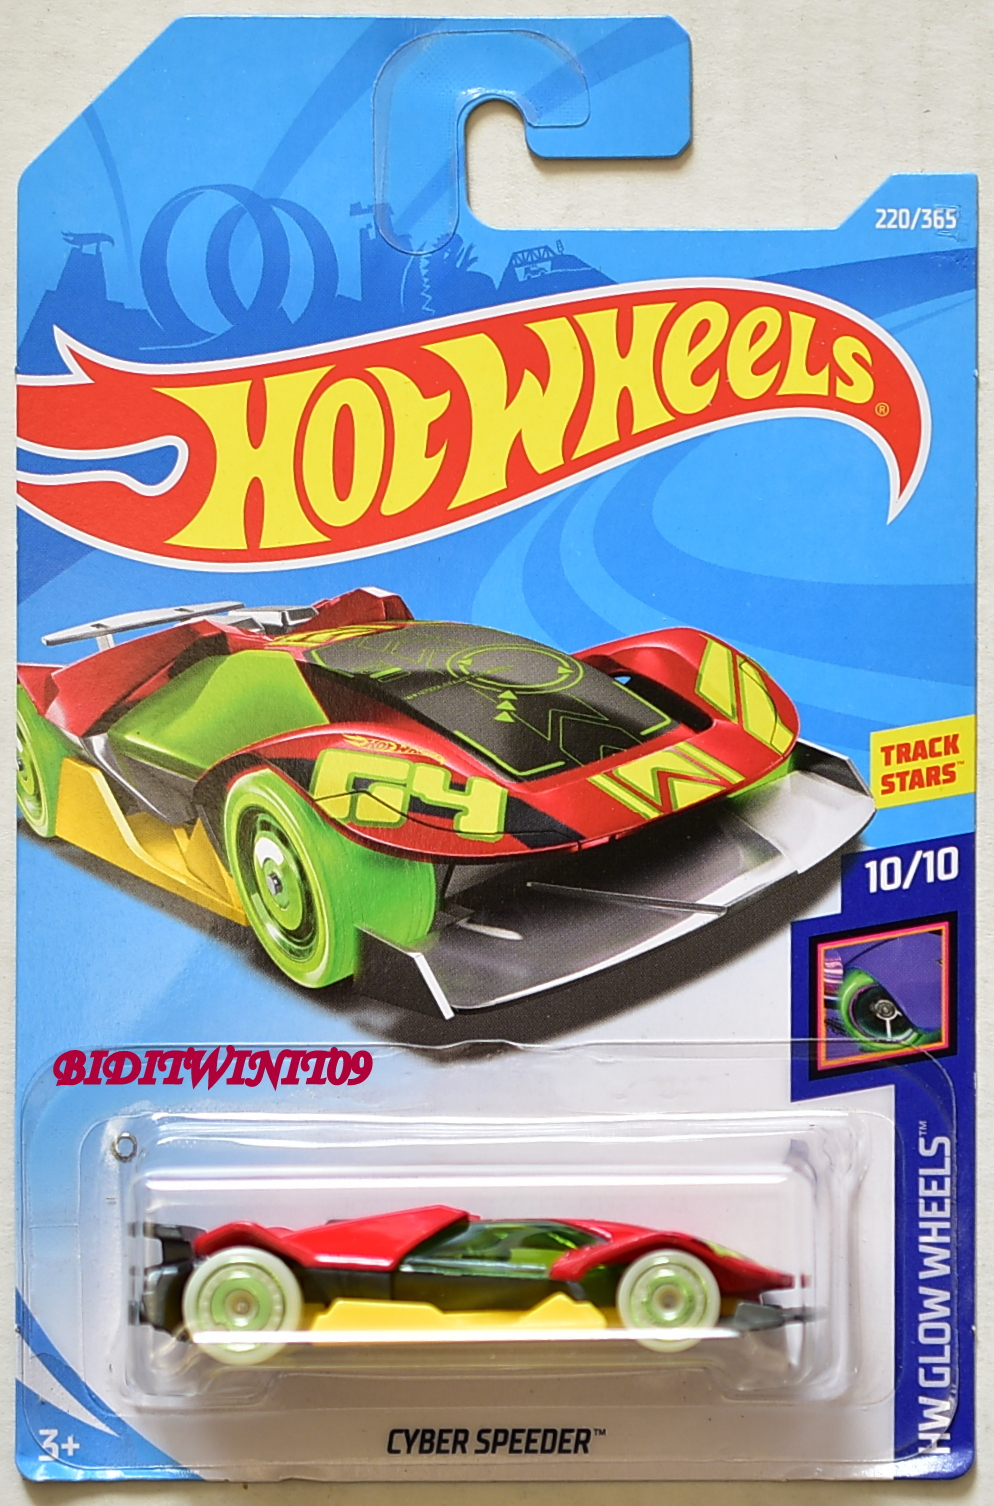 HOT WHEELS 2018 HW GLOW WHEELS CYBER SPEEDER RED